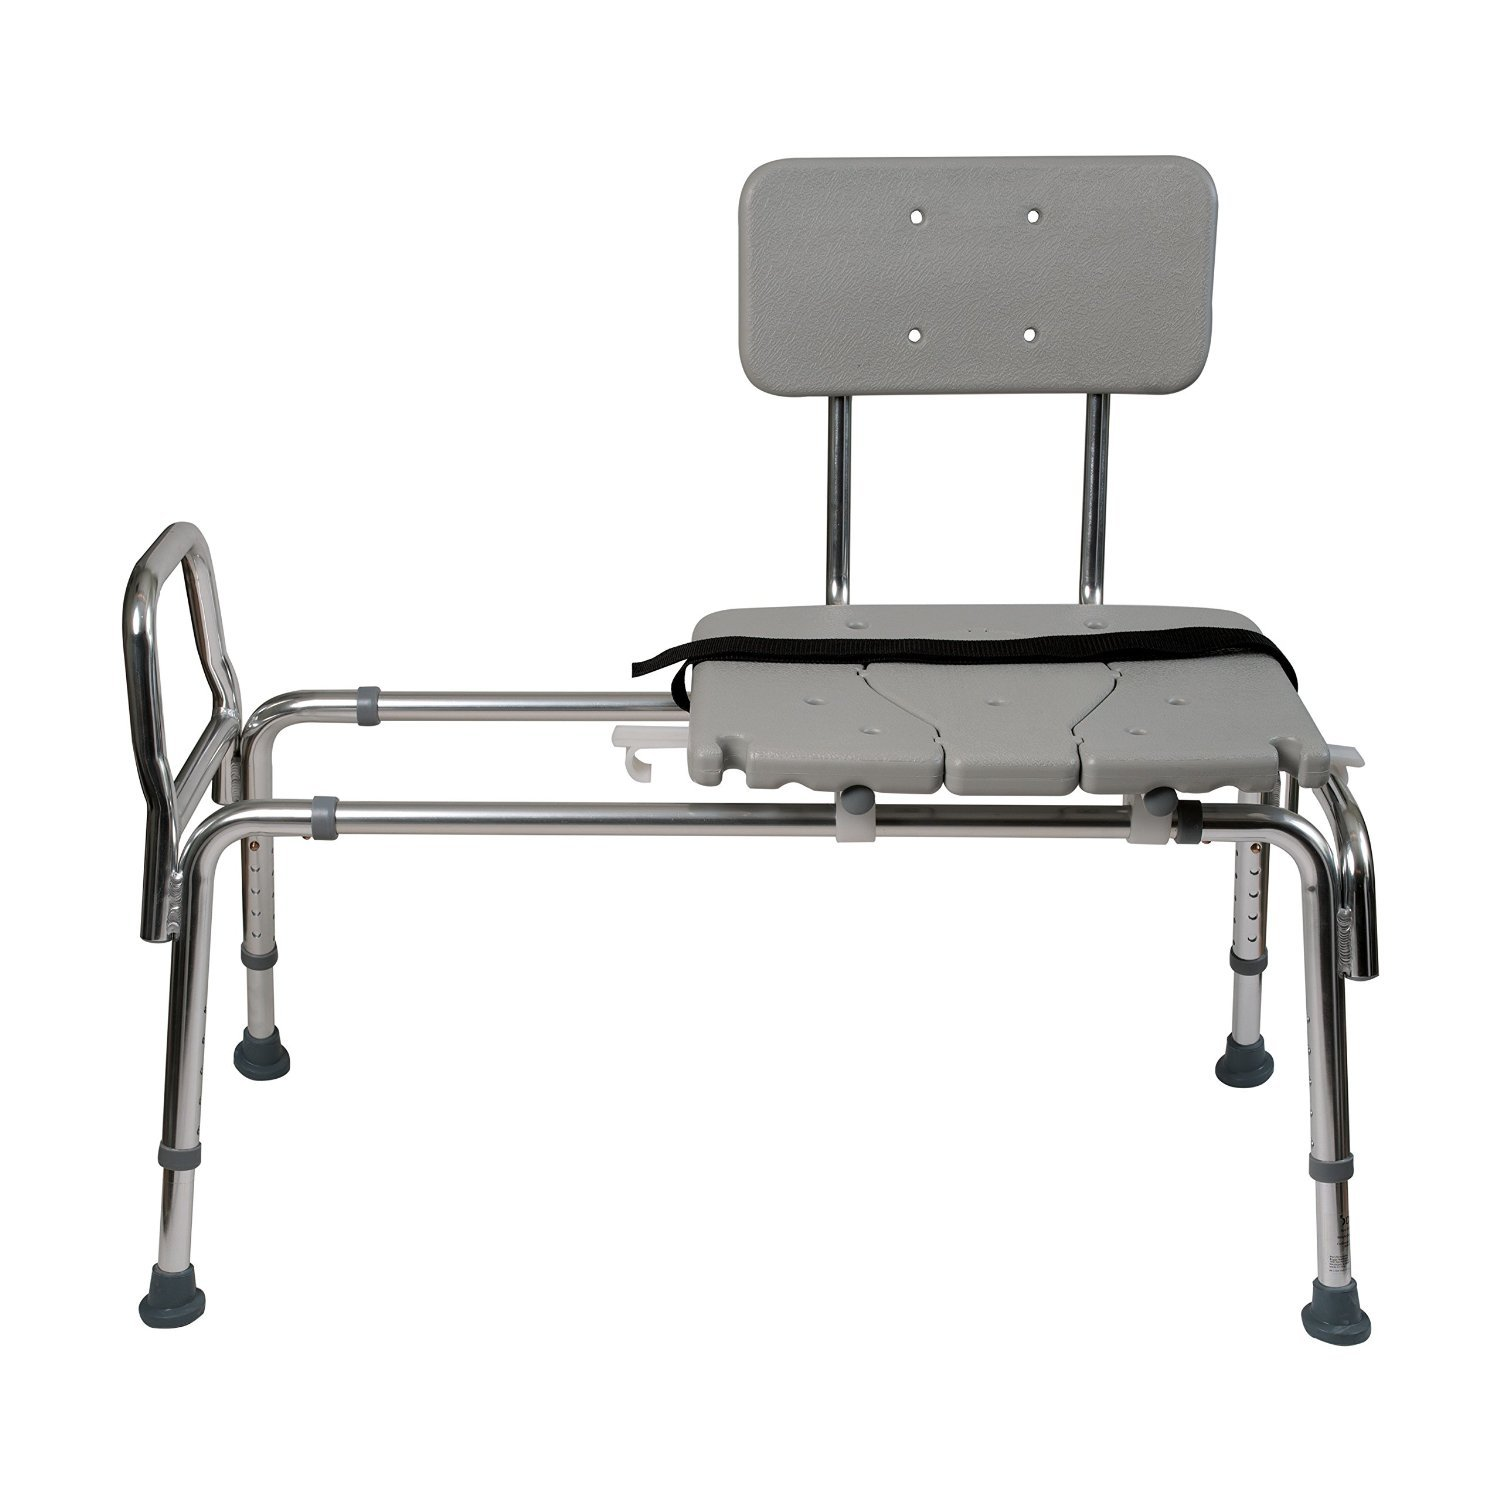 Amazon.com: Duro-Med Heavy-Duty Sliding Transfer Bench Shower Chair ...